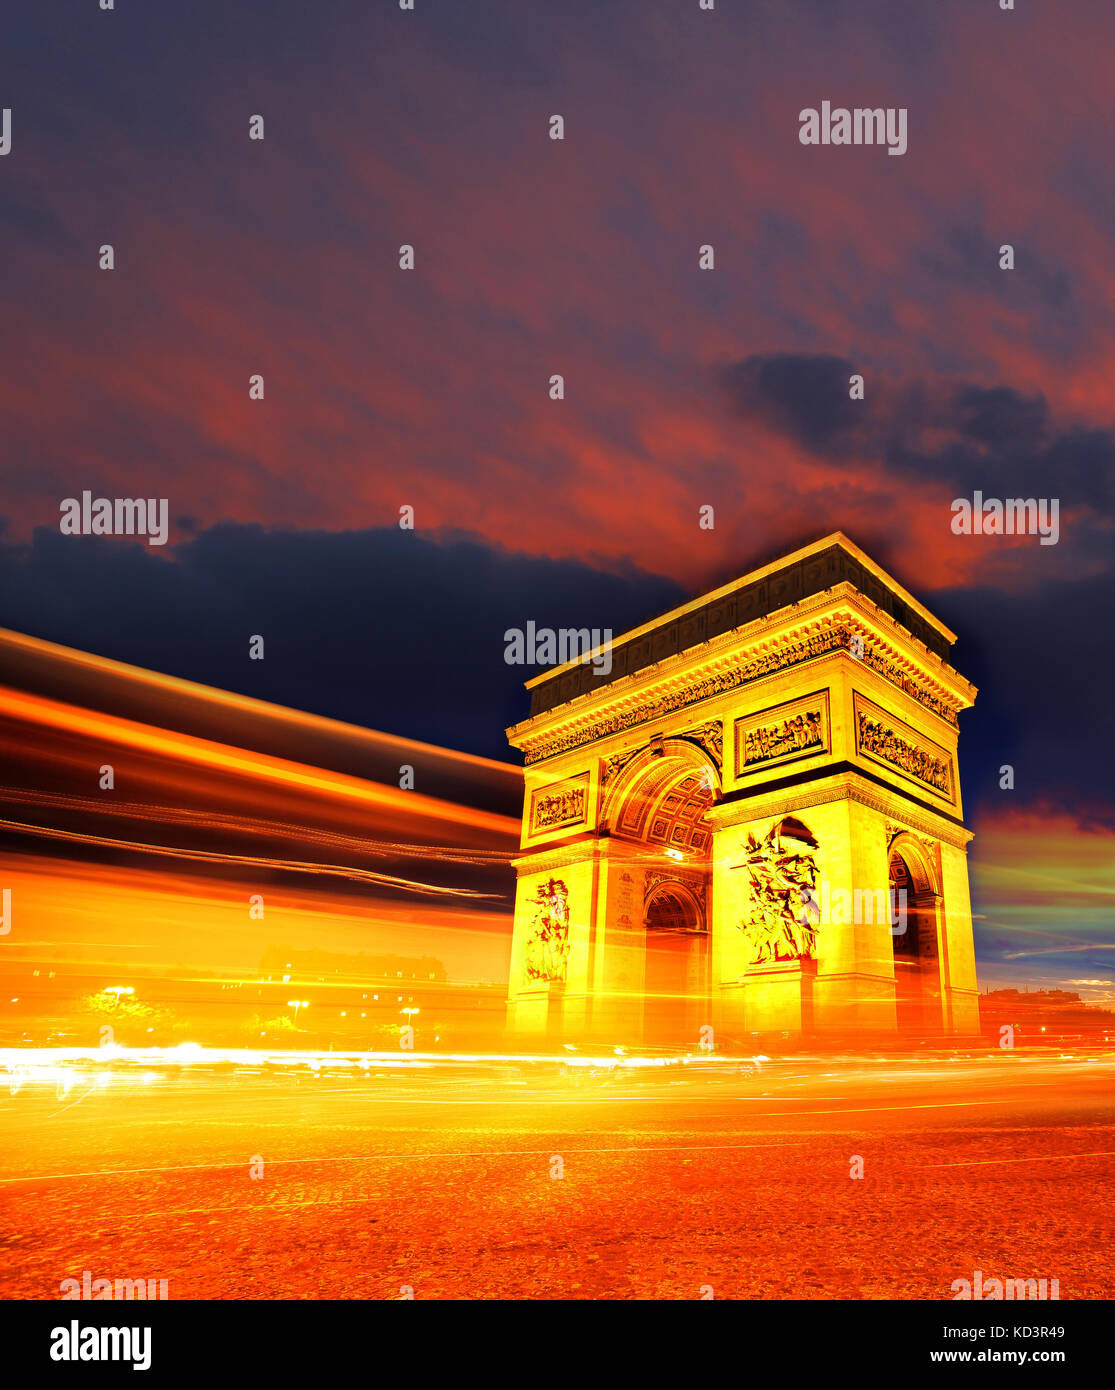 Famous Arc de Triomphe at night in Paris, France - Stock Image